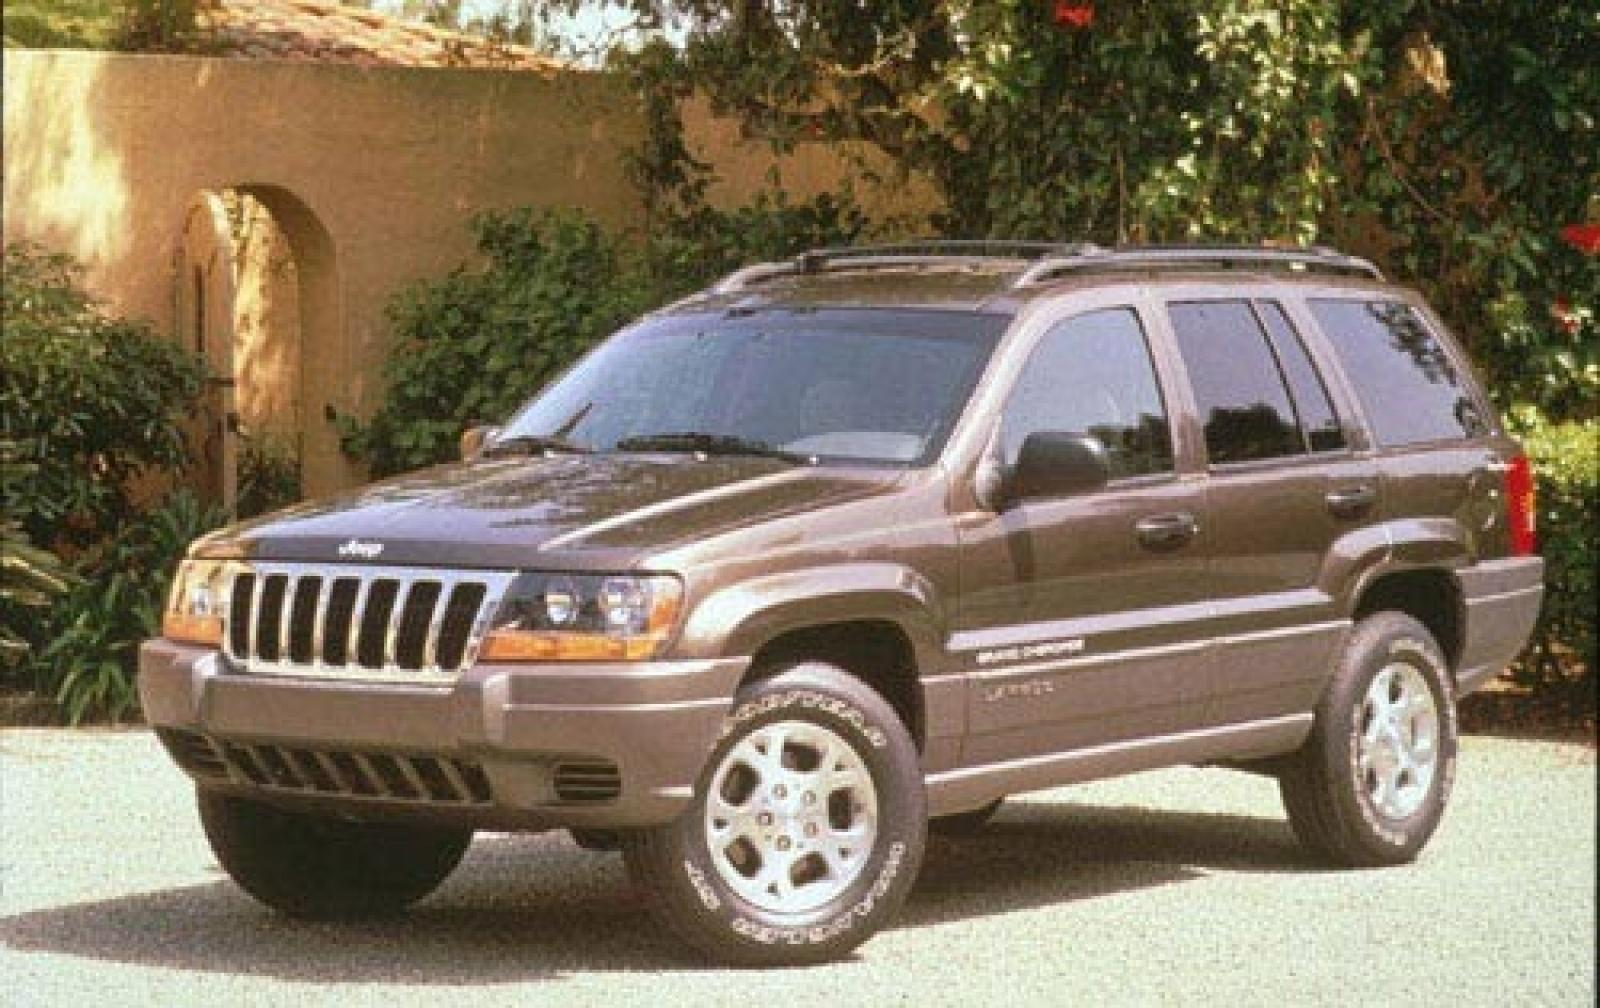 2001 jeep grand cherokee - information and photos - zombiedrive